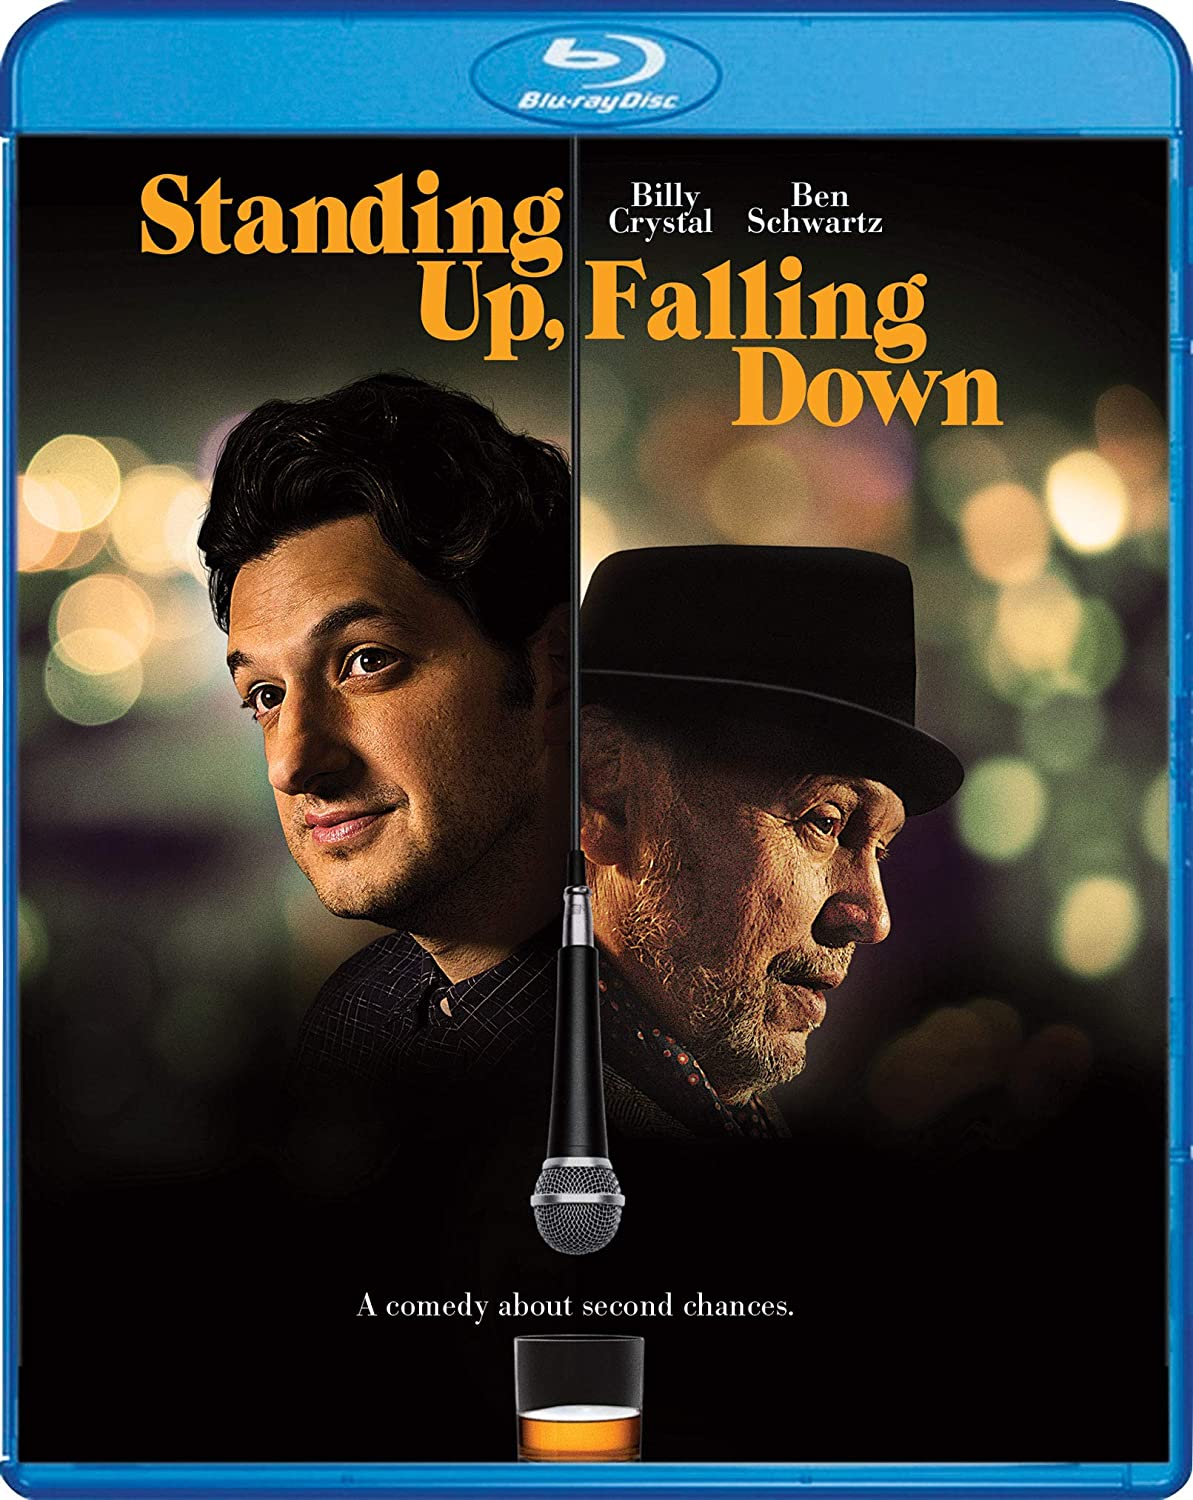 Image result for pictures of standing up falling down movie